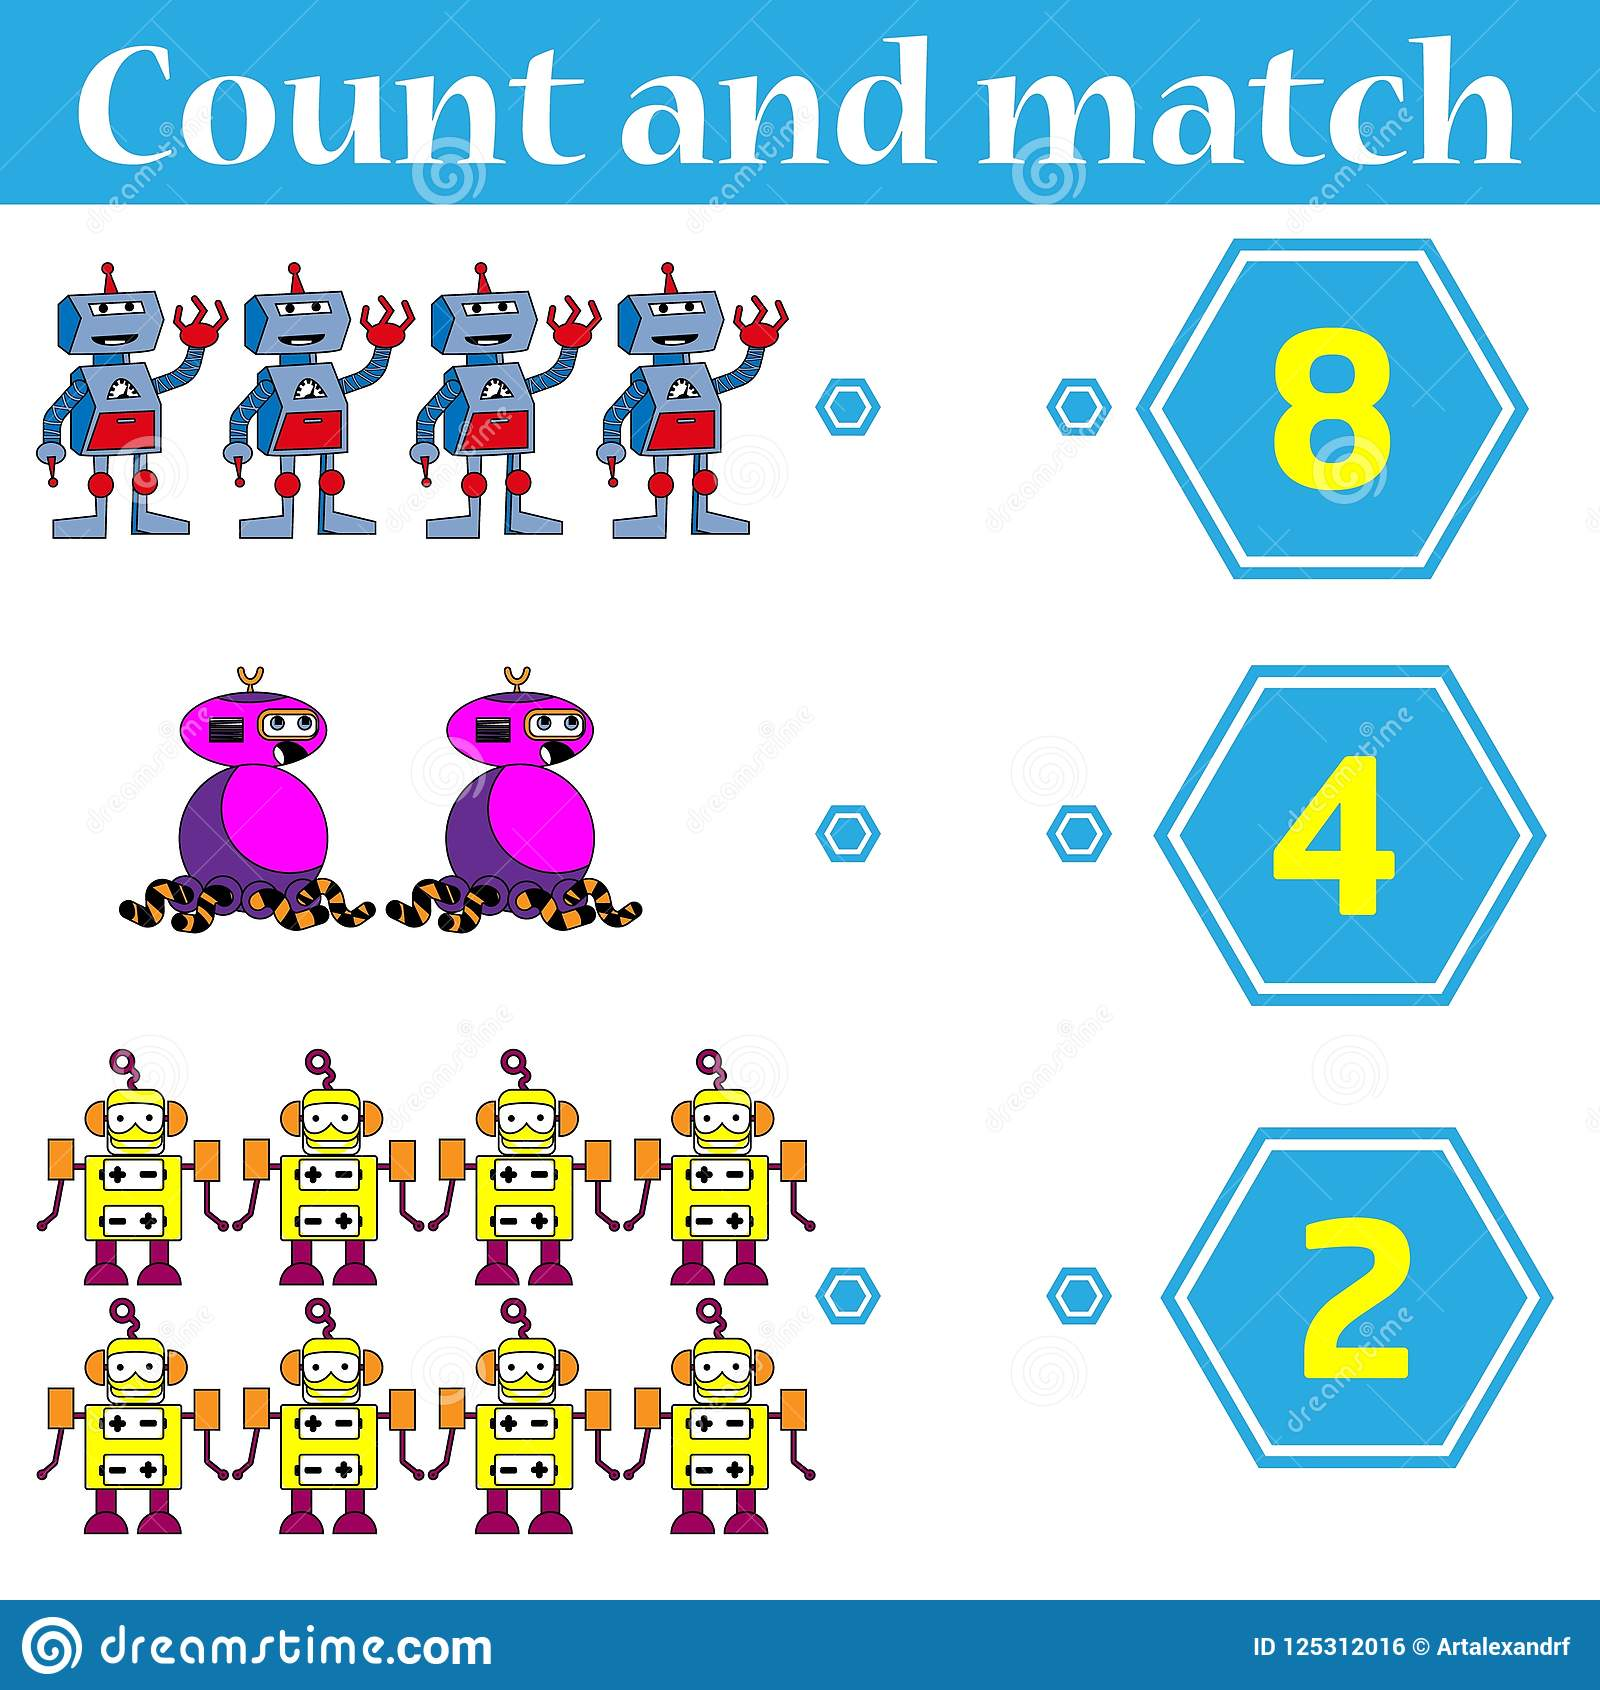 Counting Game For Preschool Kids Educational And Mathematical Game For Children Count And